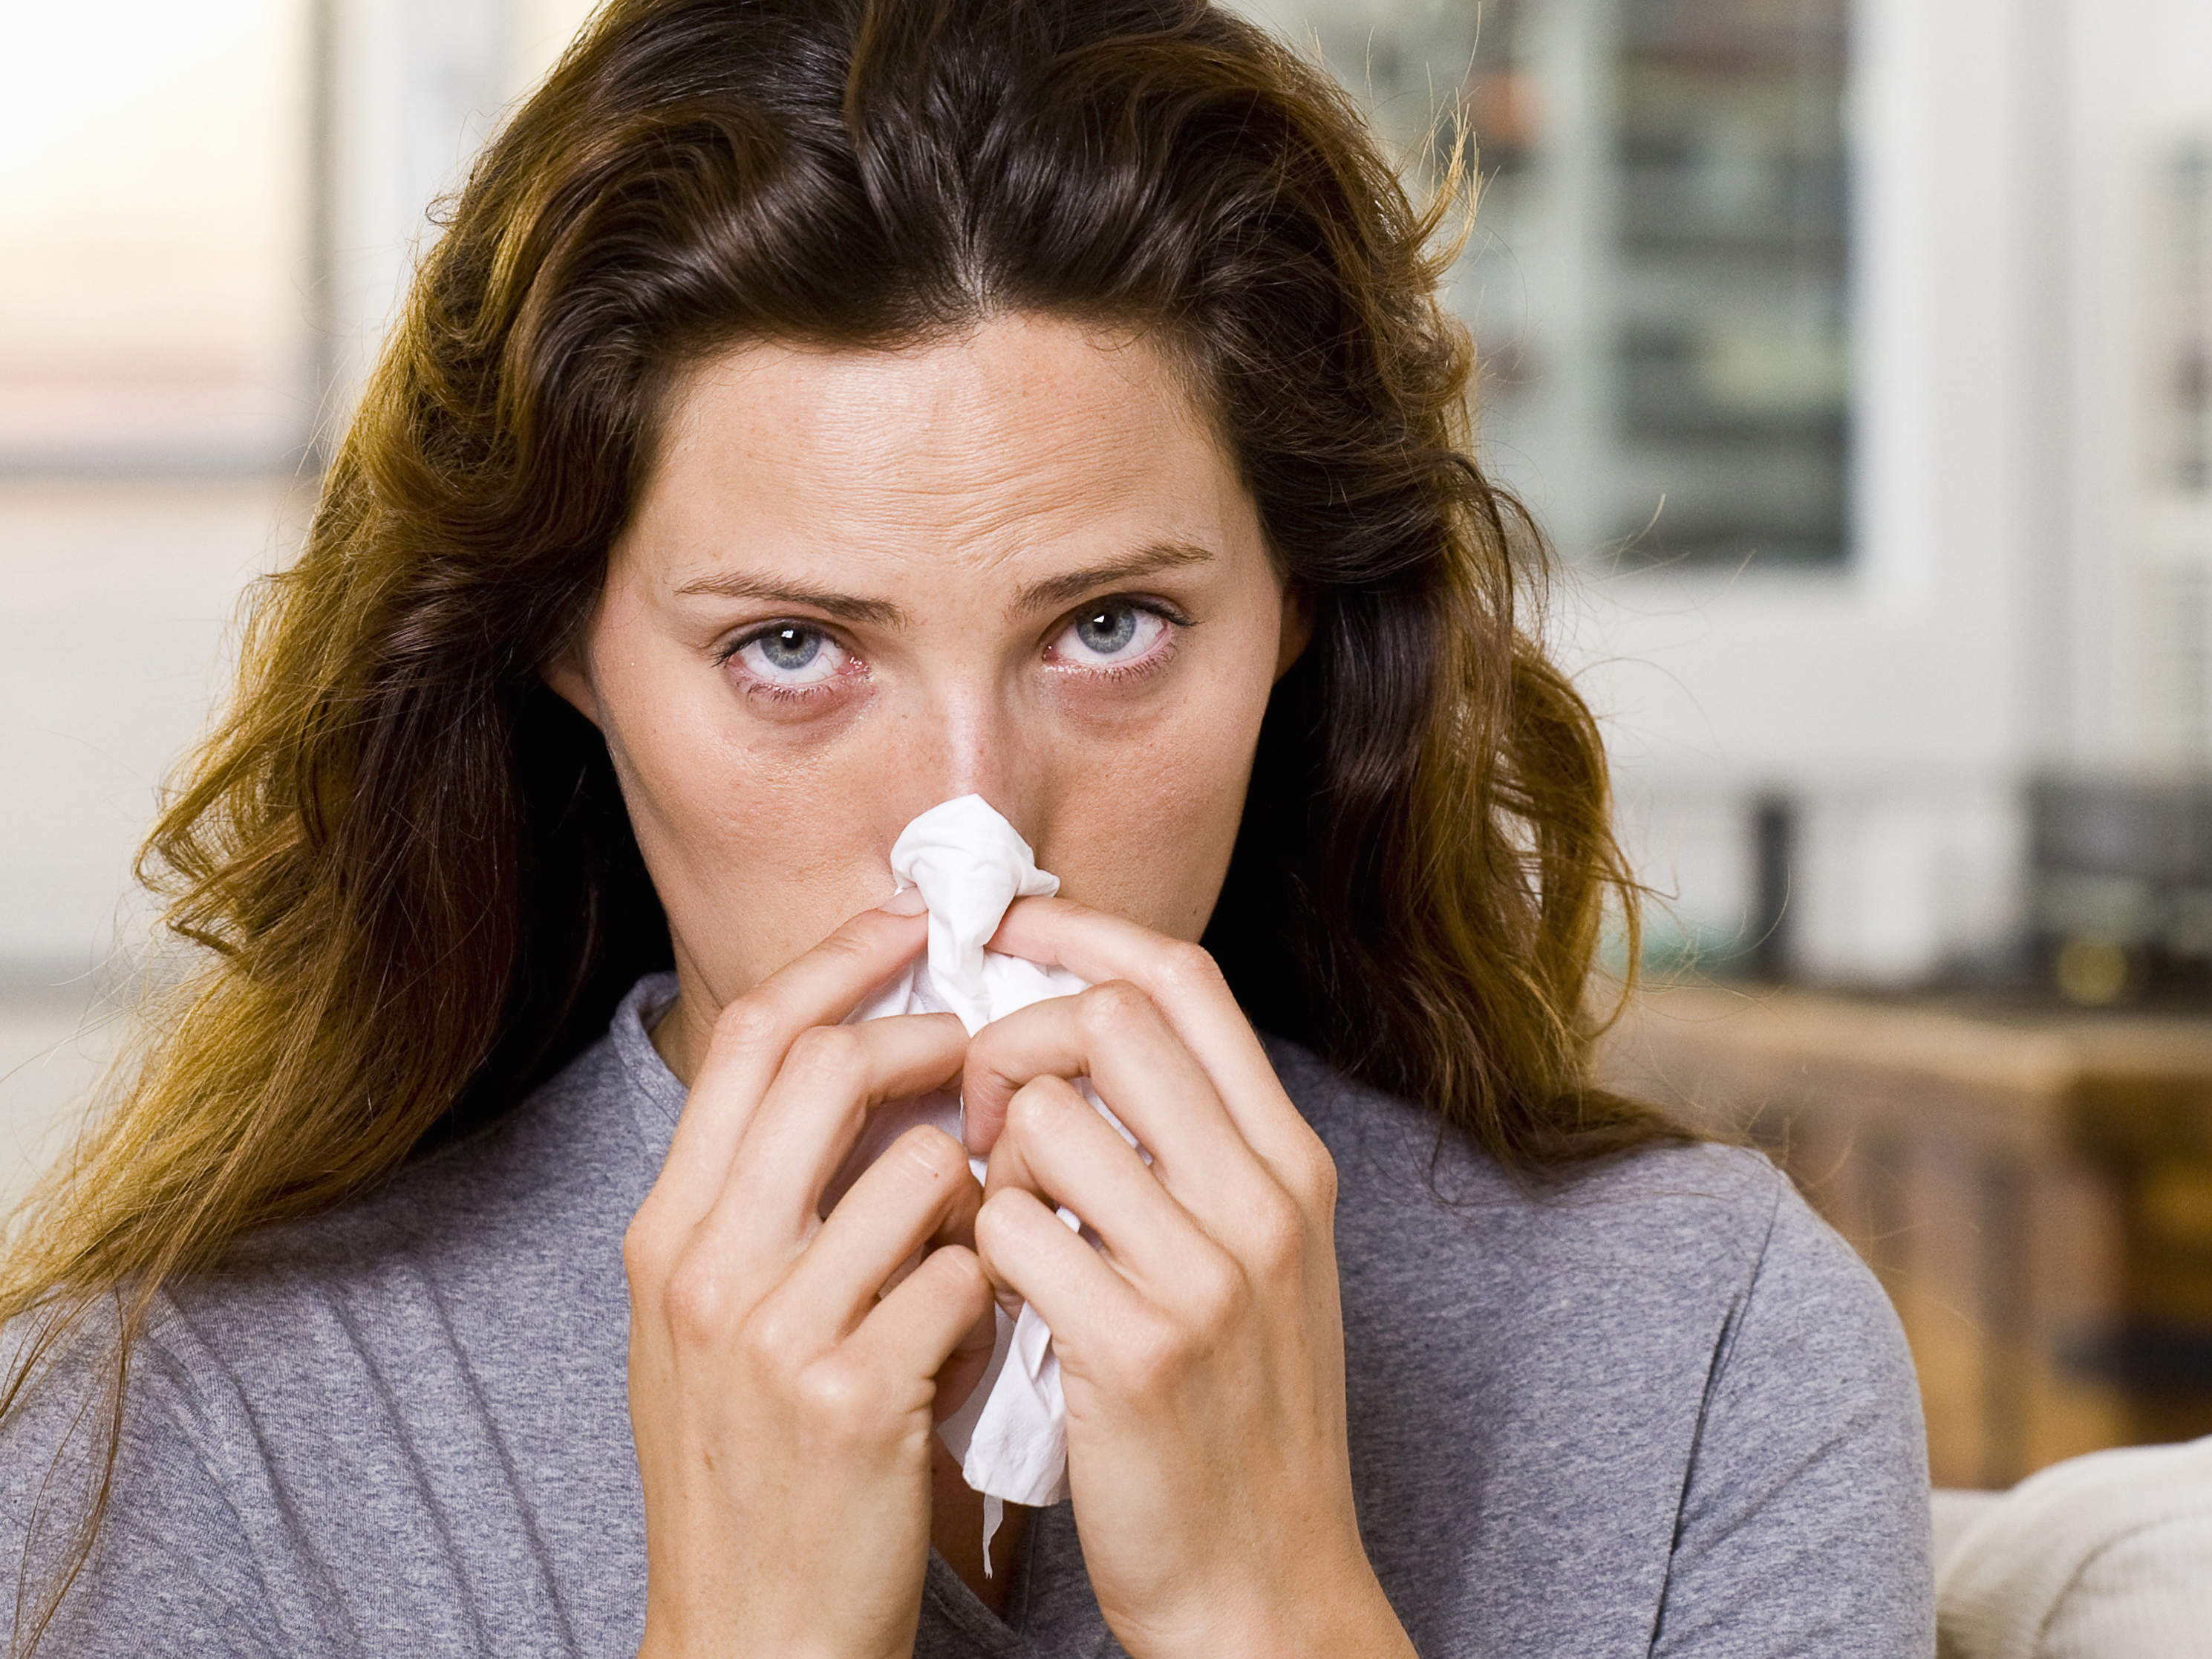 Stress Can Make Seasonal Allergies Worse Stress Can Make Seasonal Allergies Worse new pics